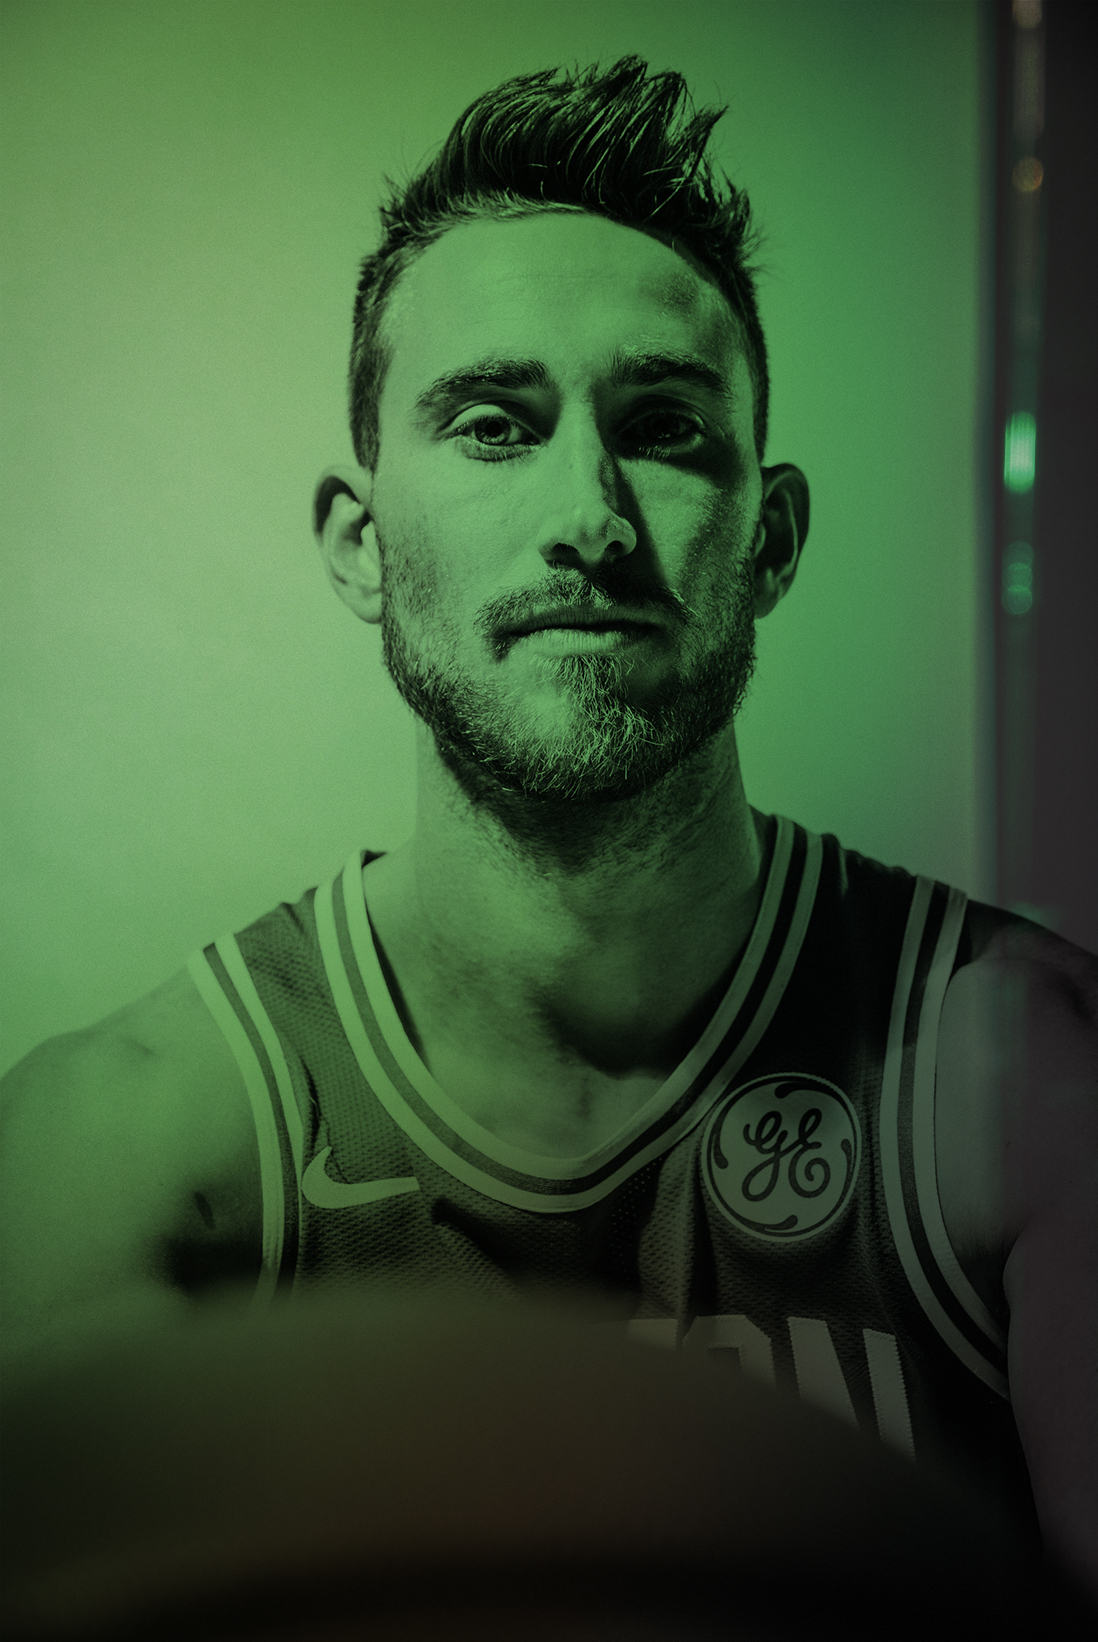 Salafia_Improper_Gordon_Hayward_6991